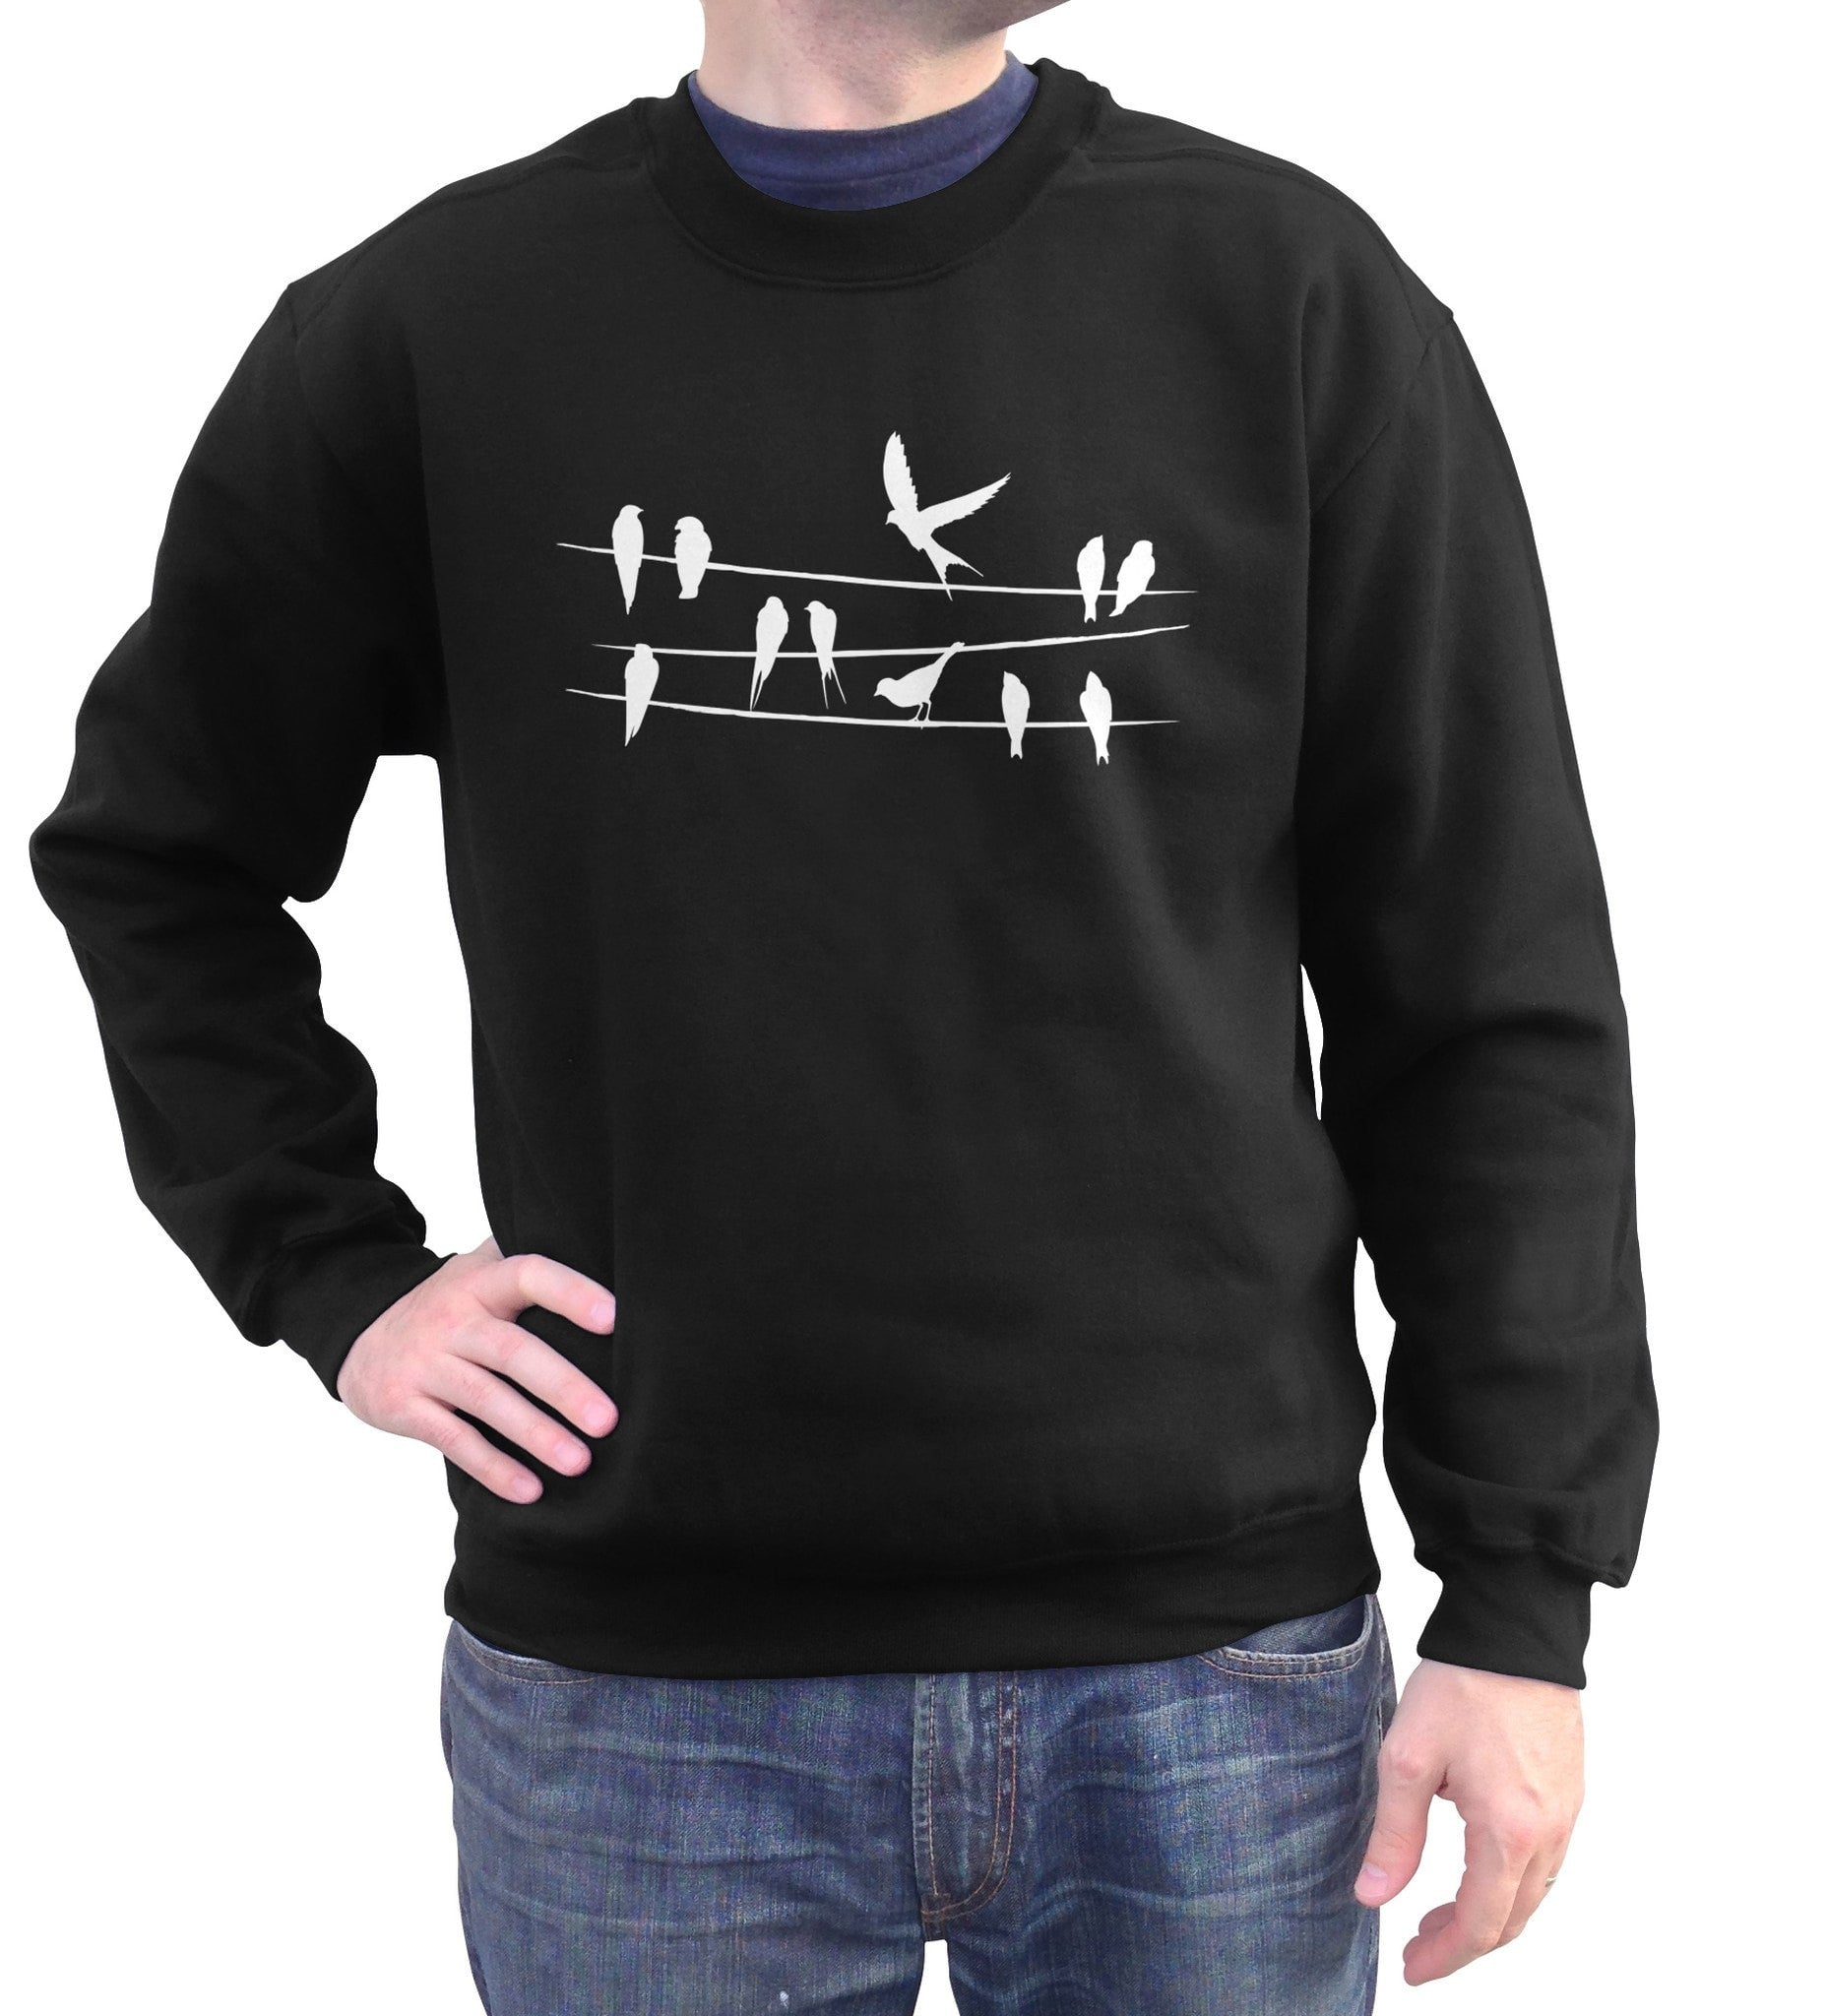 Unisex Birds On A Wire Sweatshirt